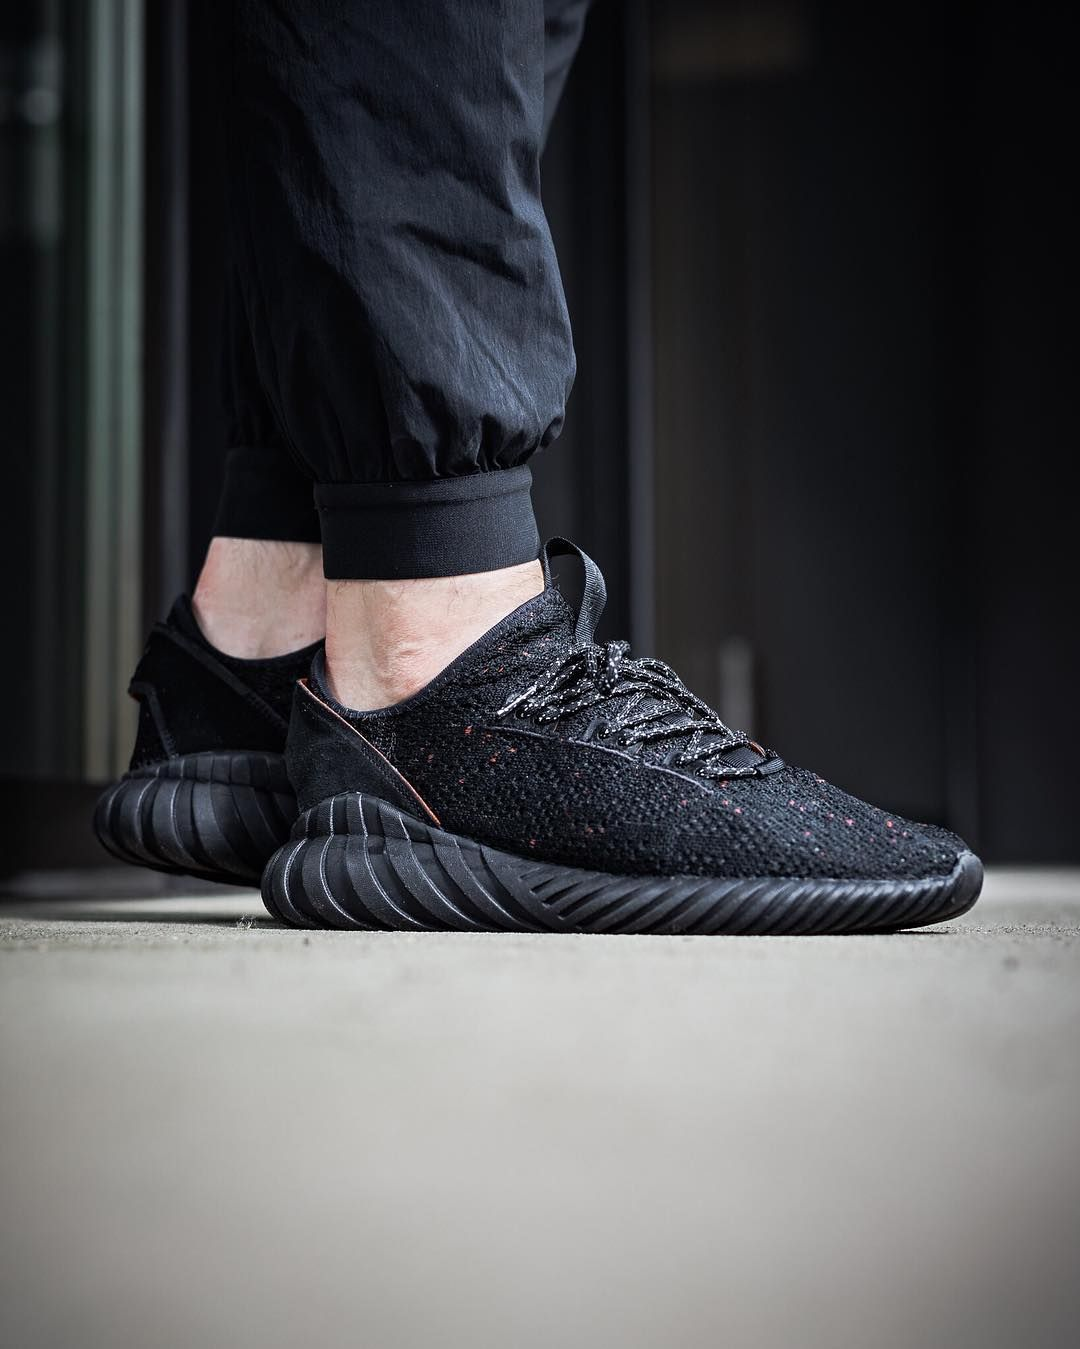 Adidas Tubular Doom Sock Primeknit Pirate Black With Images